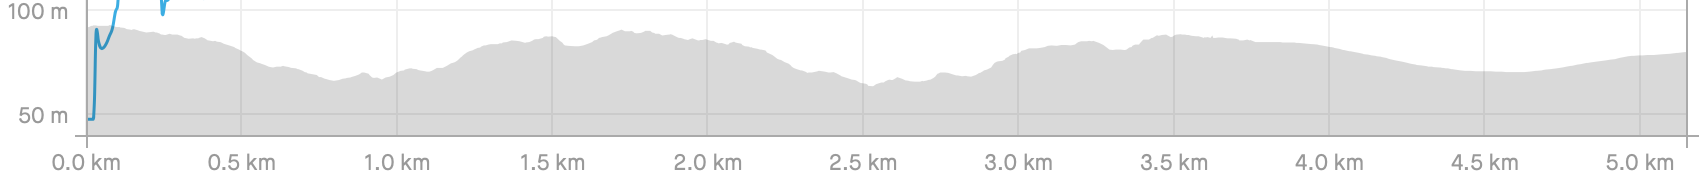 Down, then up, and repeat, on the elevation map